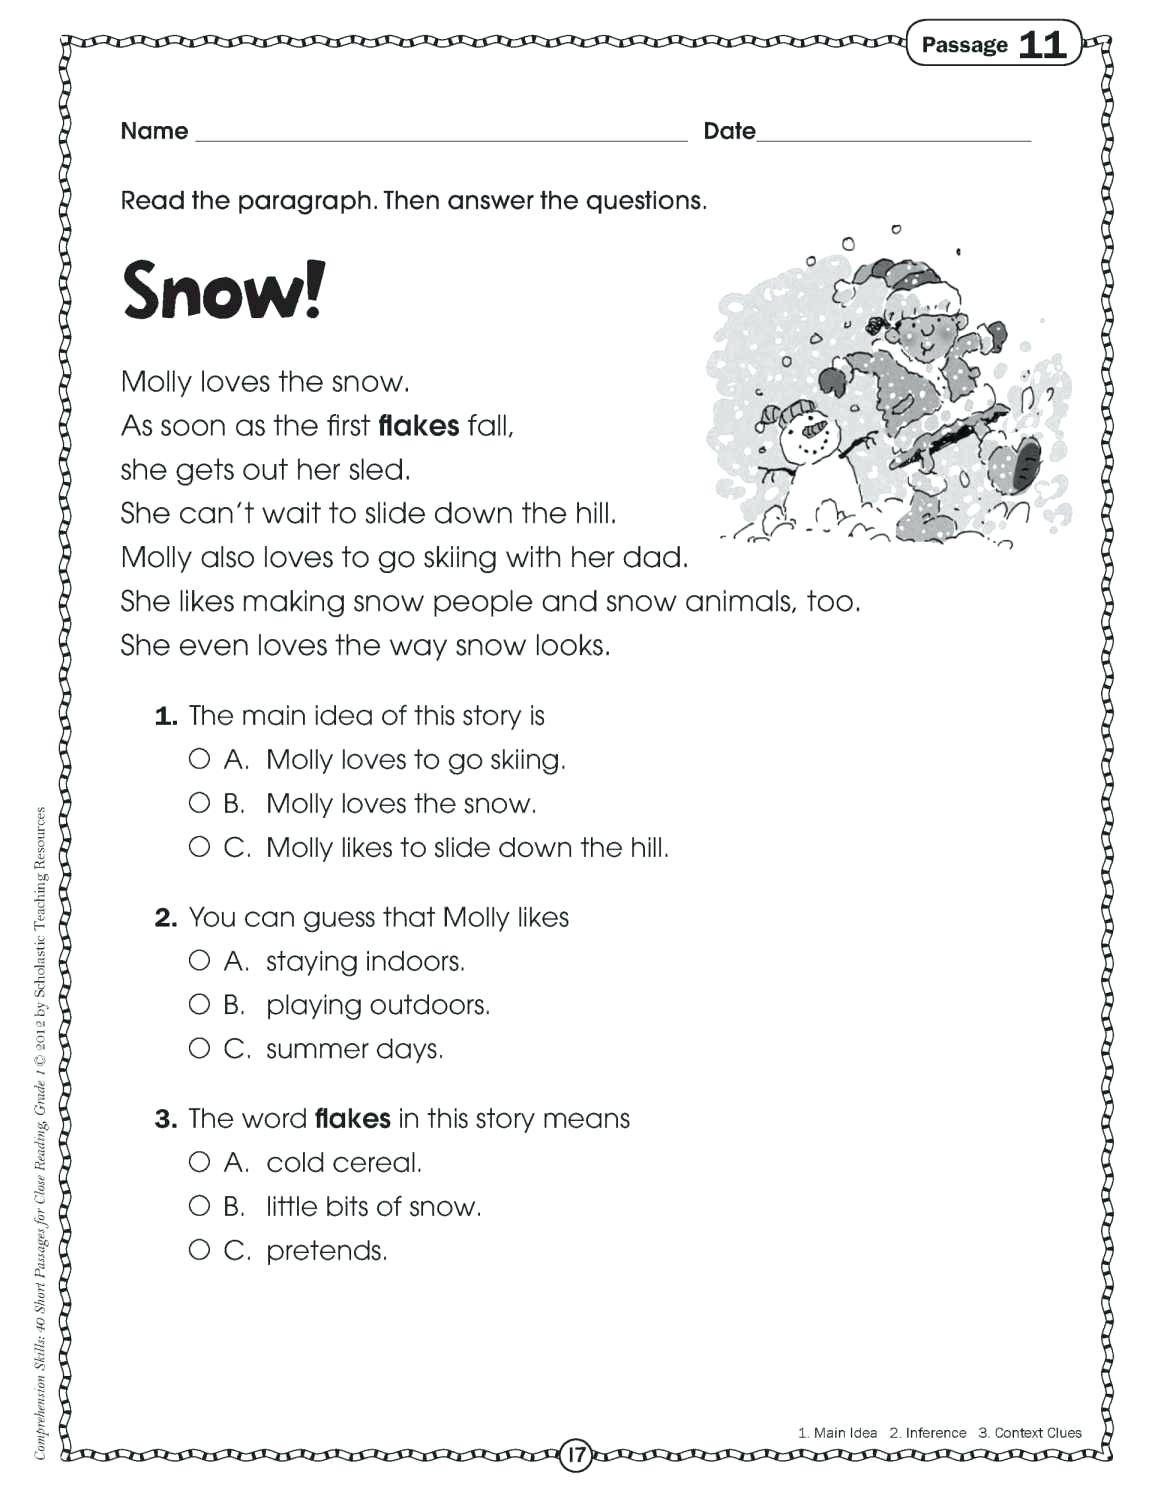 Comprehension Activities For 2Nd Grade Free Printable Reading - Free Printable Reading Games For 2Nd Graders